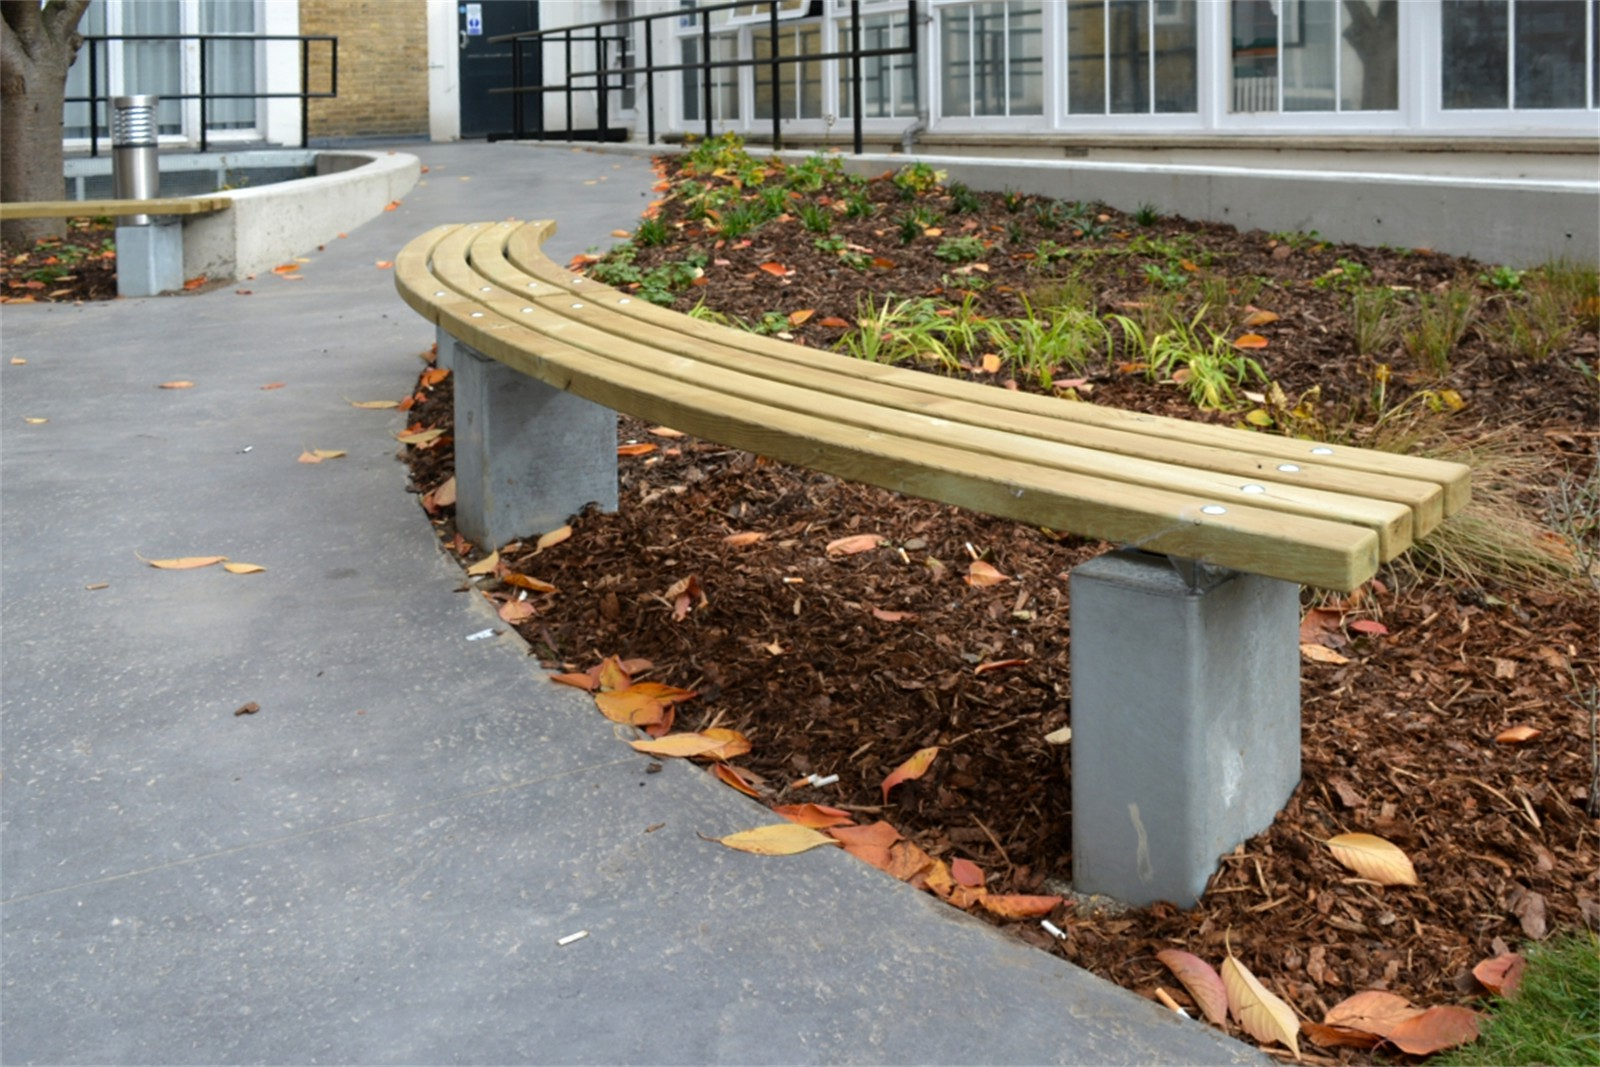 70sbe15 - Bexley long curved bench